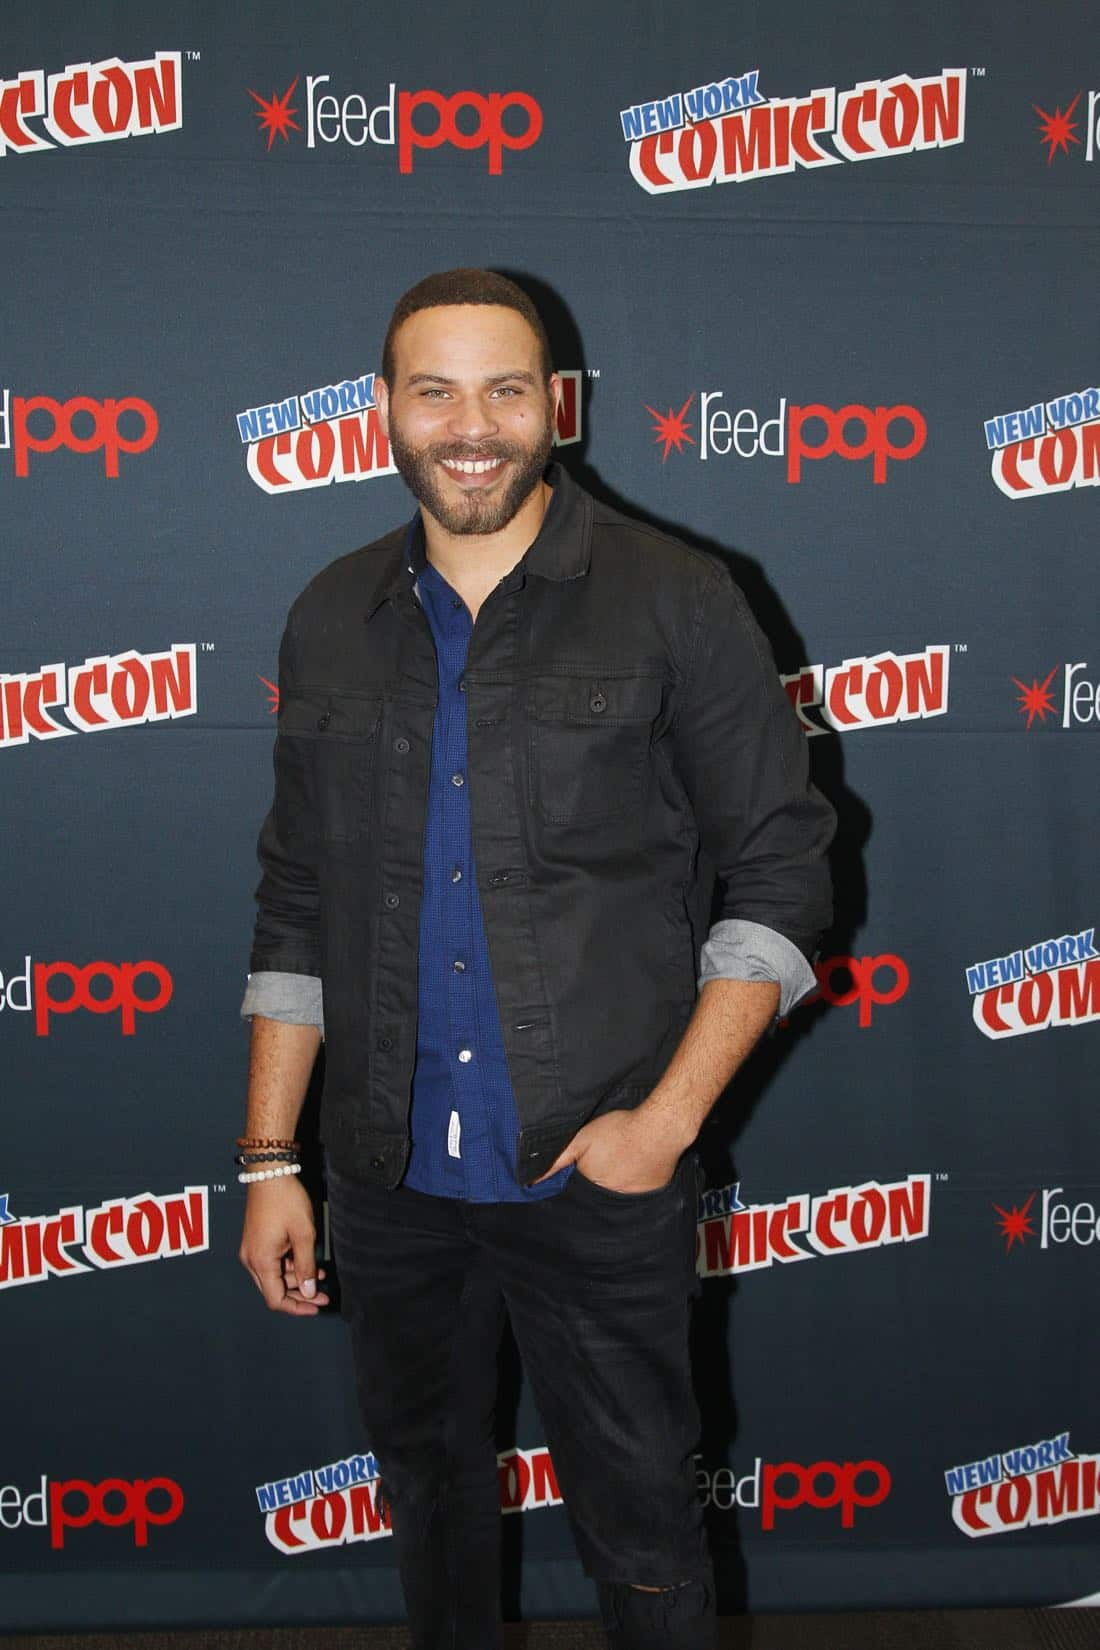 "NY COMIC-CON 2017 - SIREN - Freeform's genre programming was out in full force at this year's New York Comic Con on Saturday, October 7th with executive producers and cast from the hit series ""Shadowhunters,"" ""Beyond,"" and new original series ""Siren."" (Freeform/Lou Rocco) IAN VERDUN"